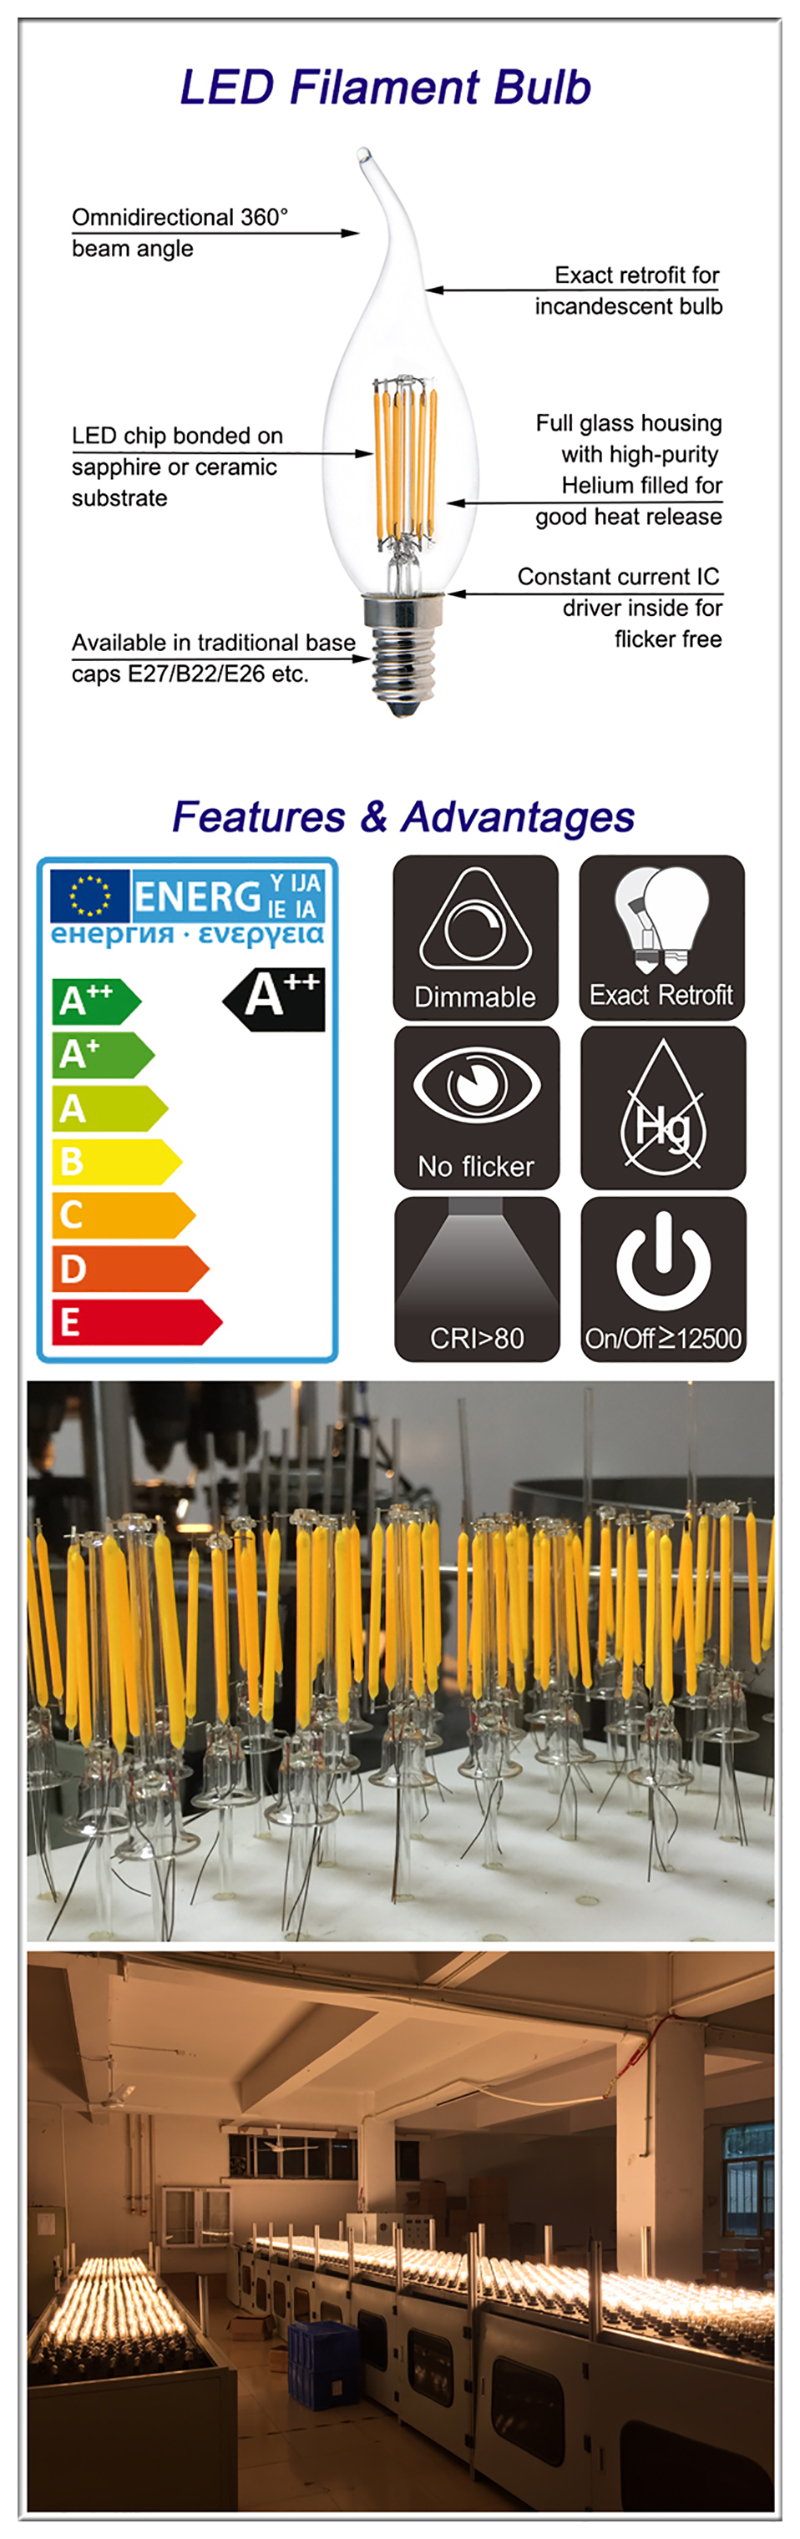 CA35 LED Filament Bulb supplier